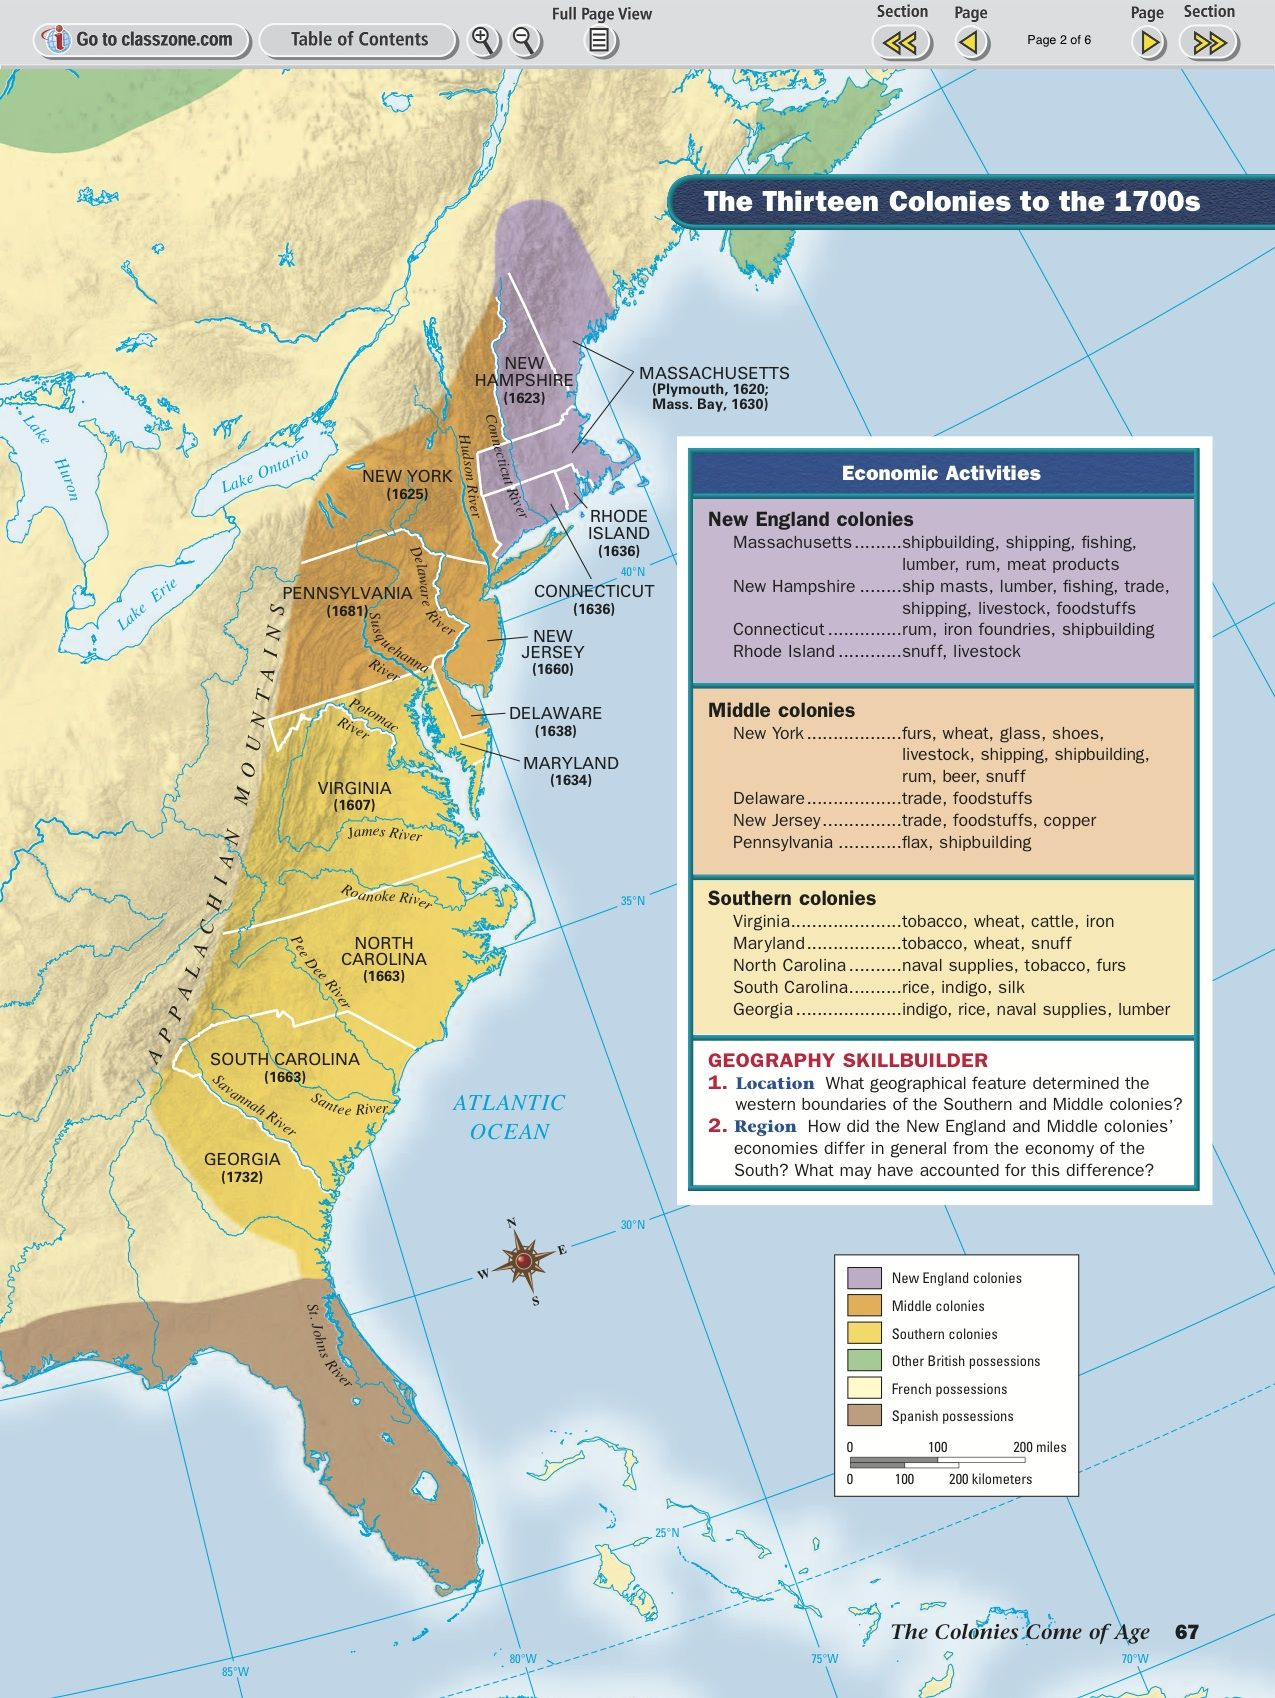 Each Region Of Colonial America Established Different